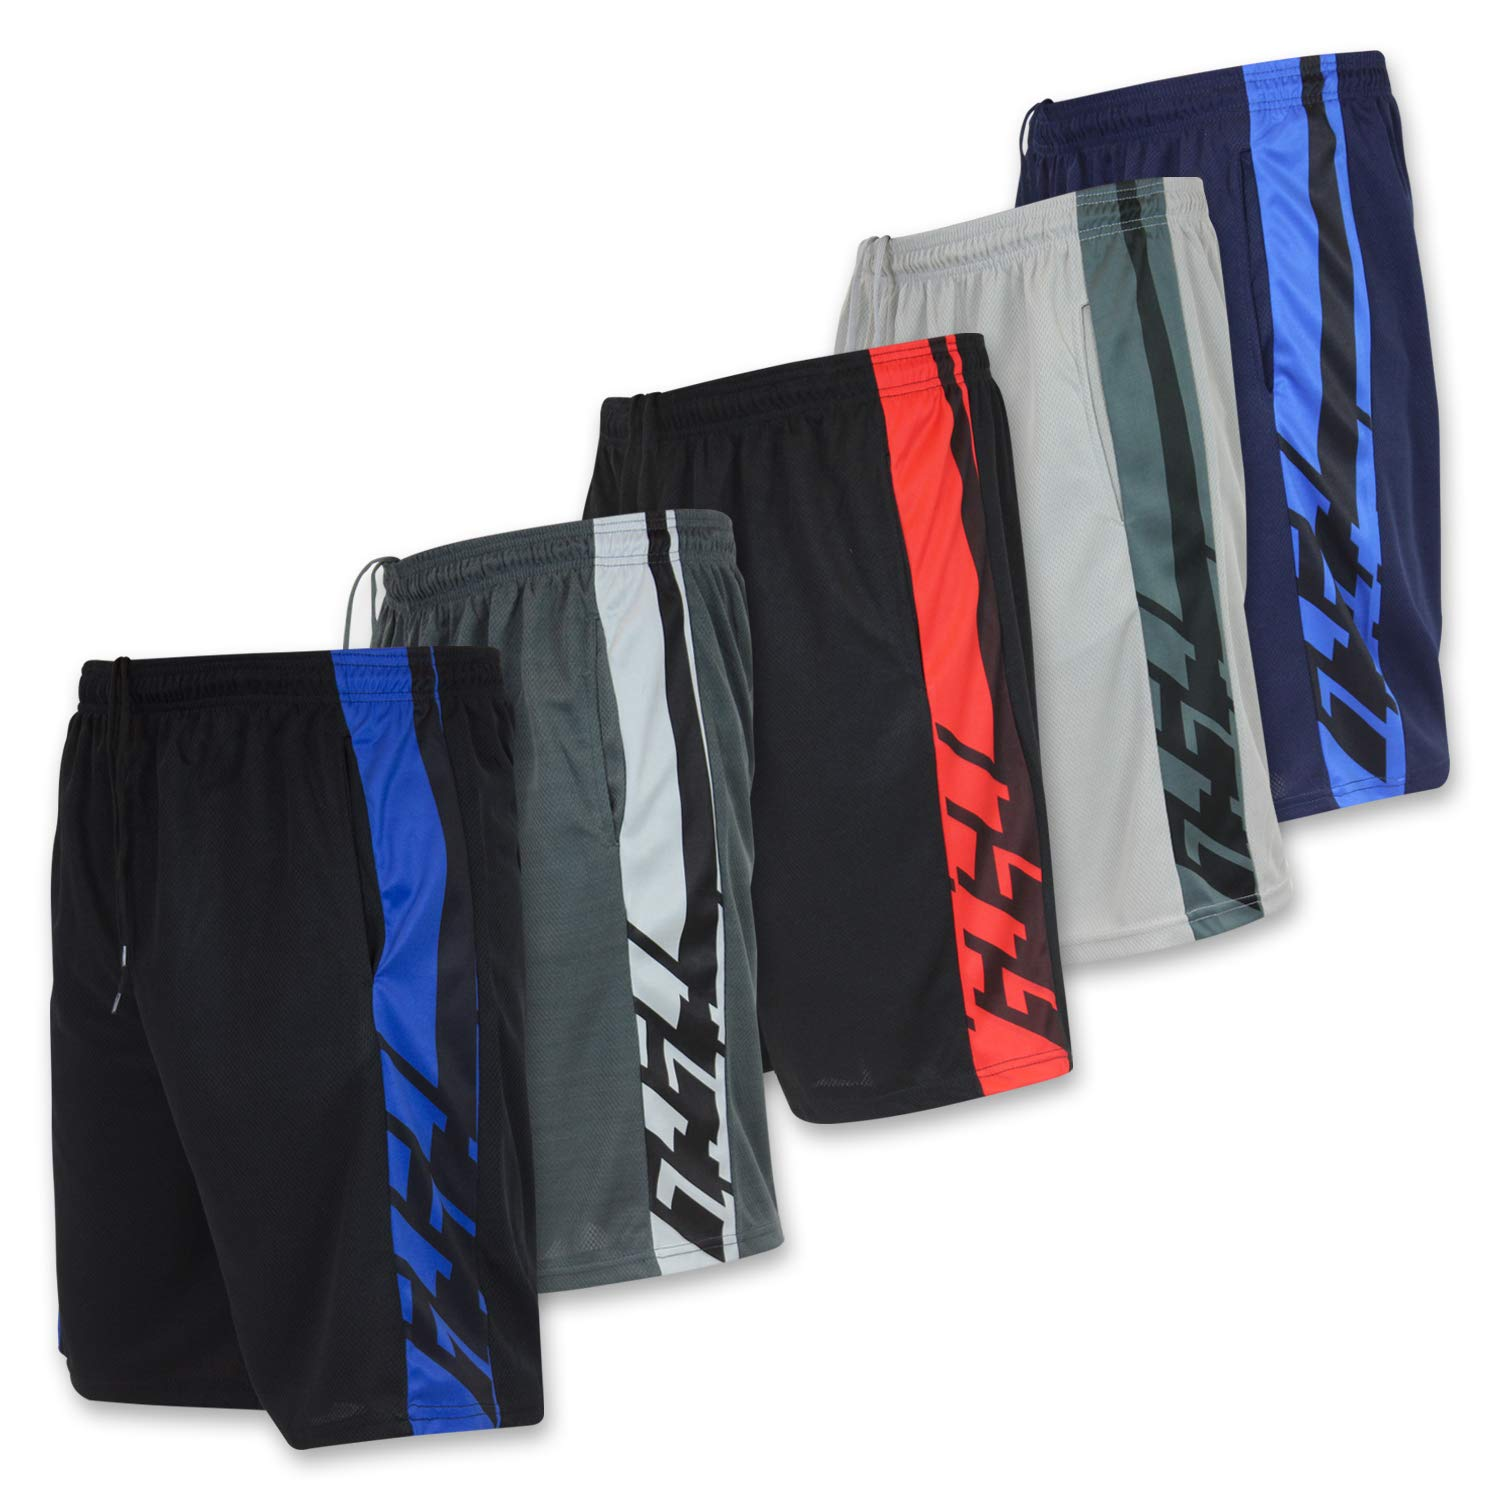 Men's Active Athletic Basketball Essentials Performance Gym Workout Shorts with Pockets - Set 2-5 Pack, S